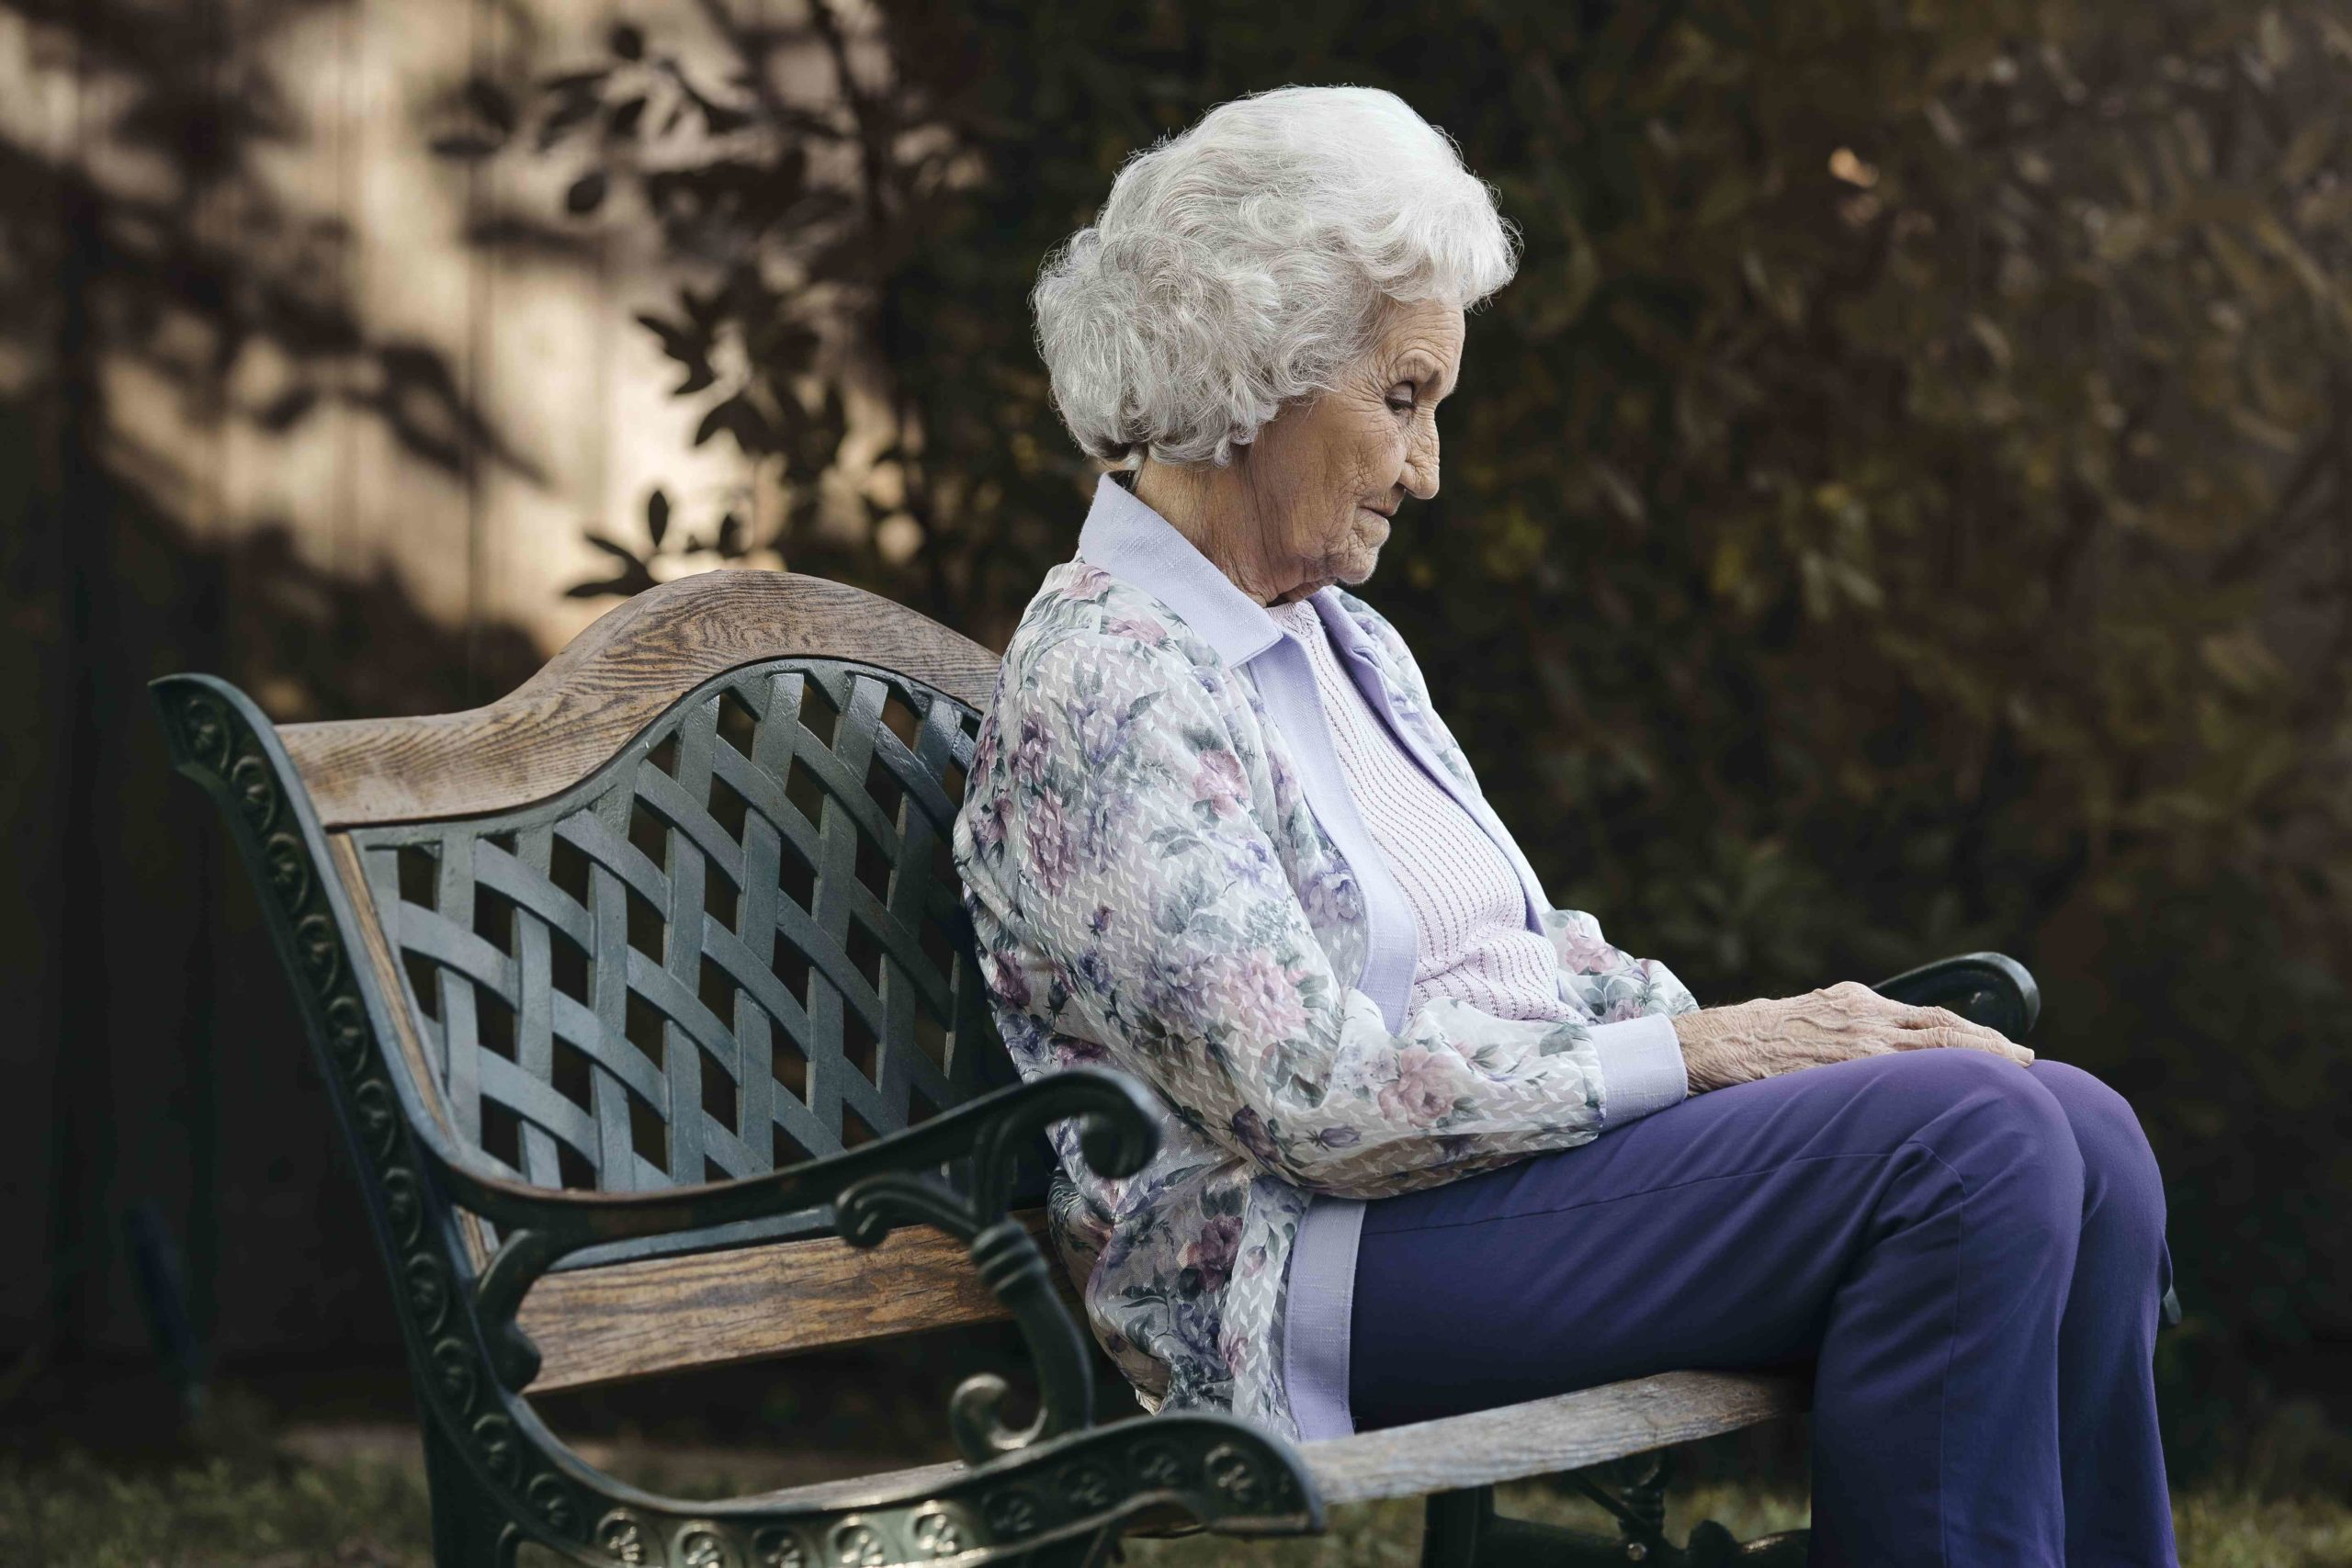 Combatting Loneliness and Isolation in Aging Parents